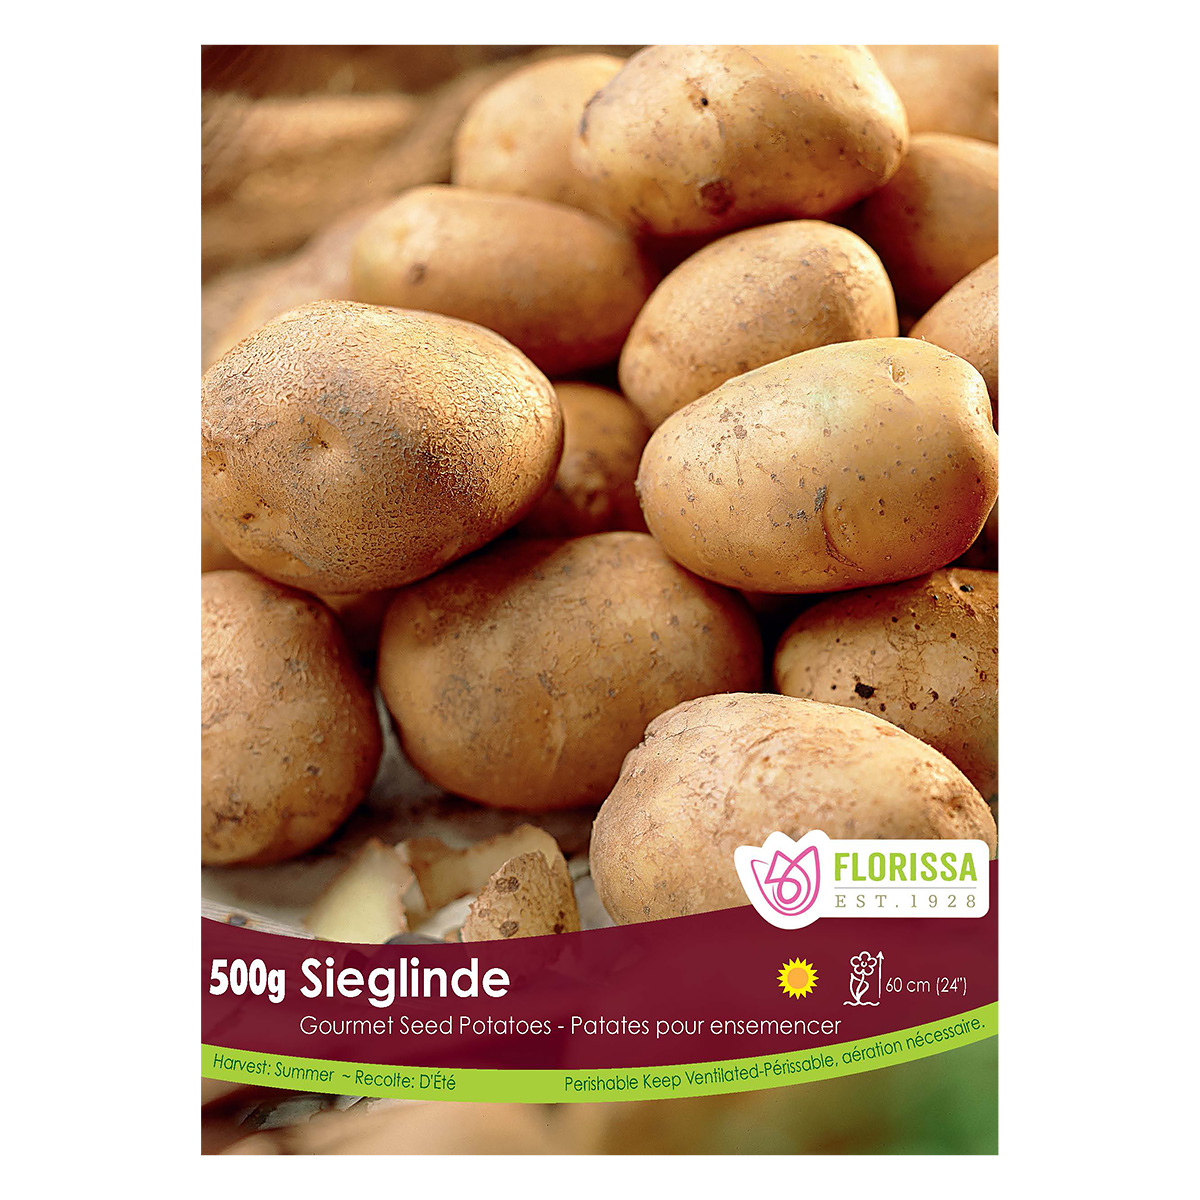 Gourmet Seed Potatoes 'Seiglinde'